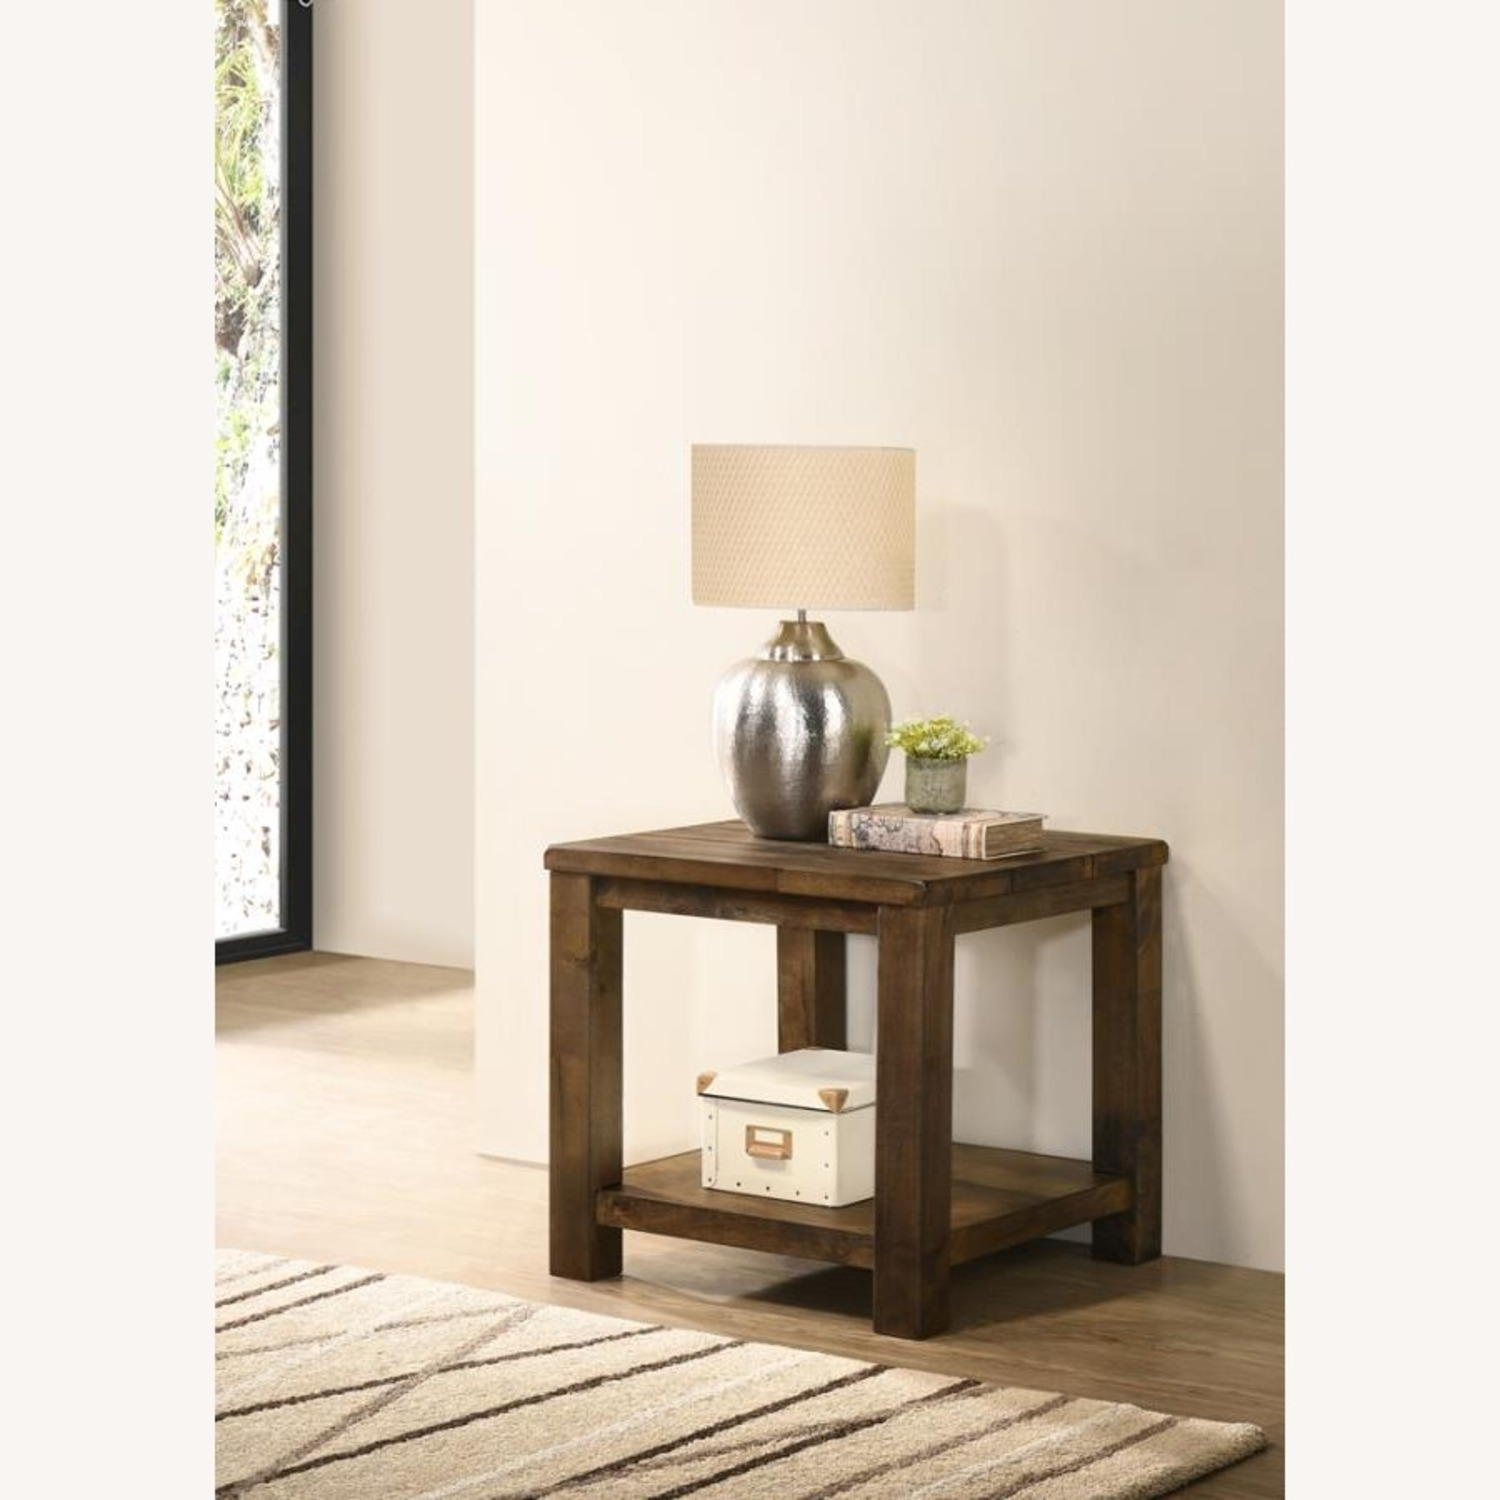 End Table In Rustic Golden Brown Wood - image-2